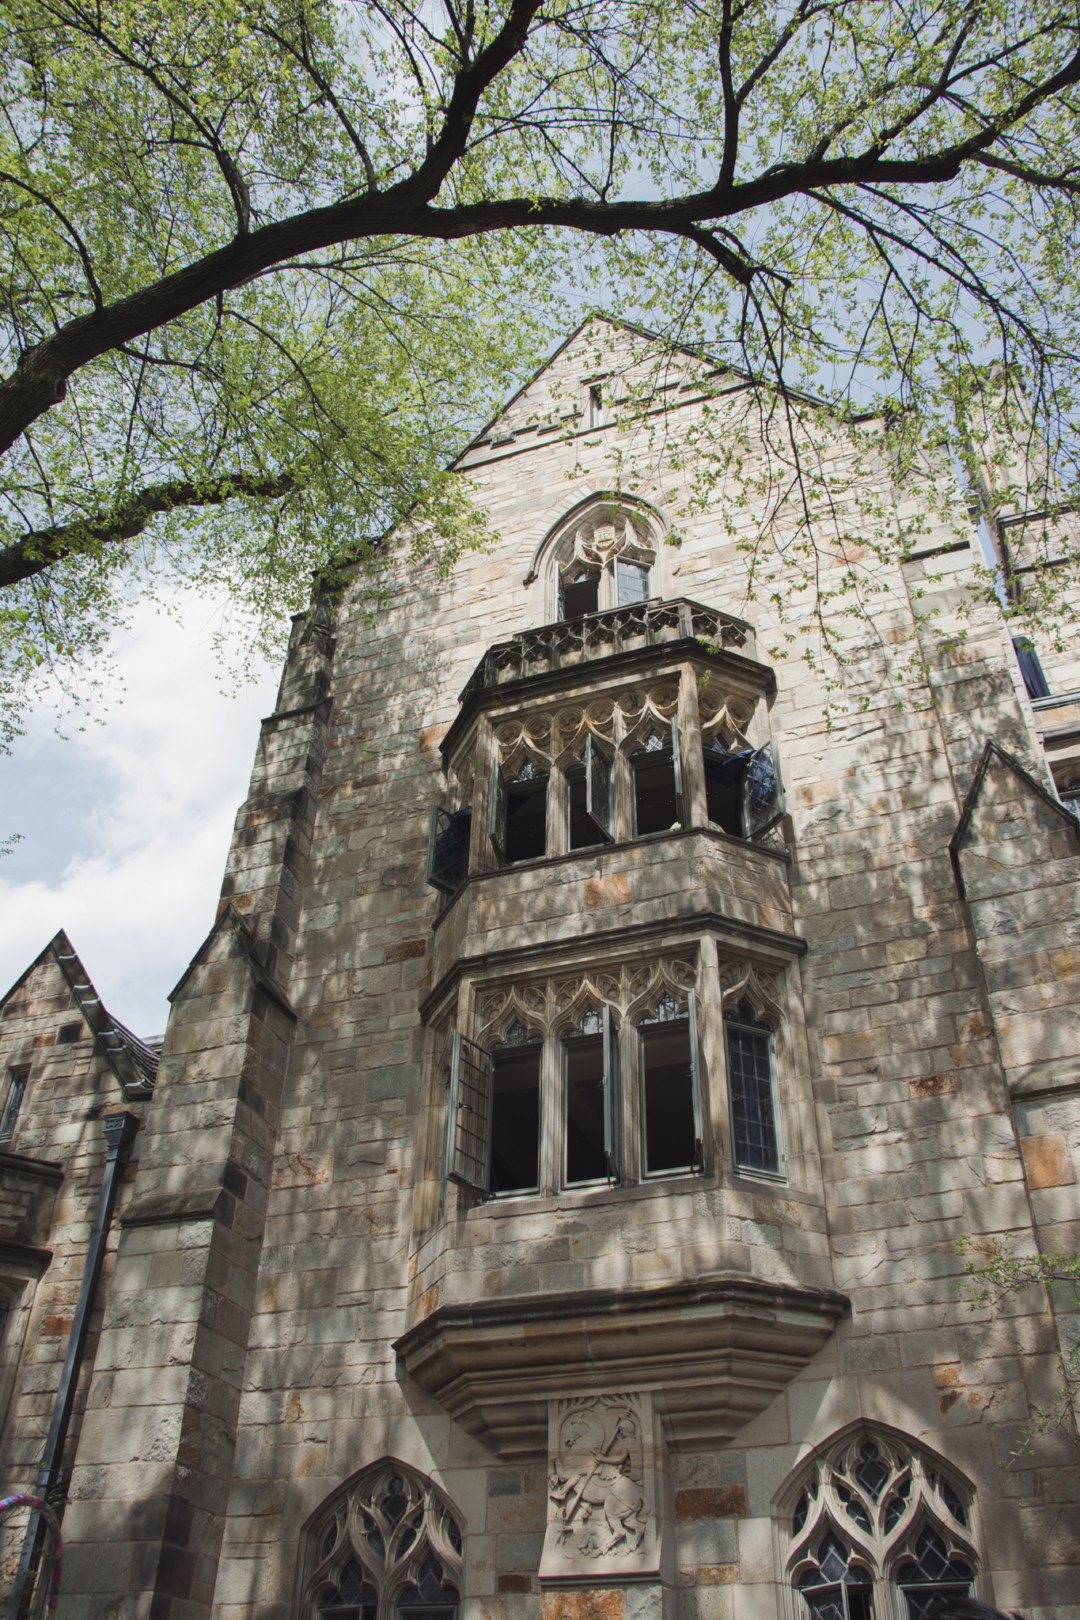 Branford College at Yale University during spring time